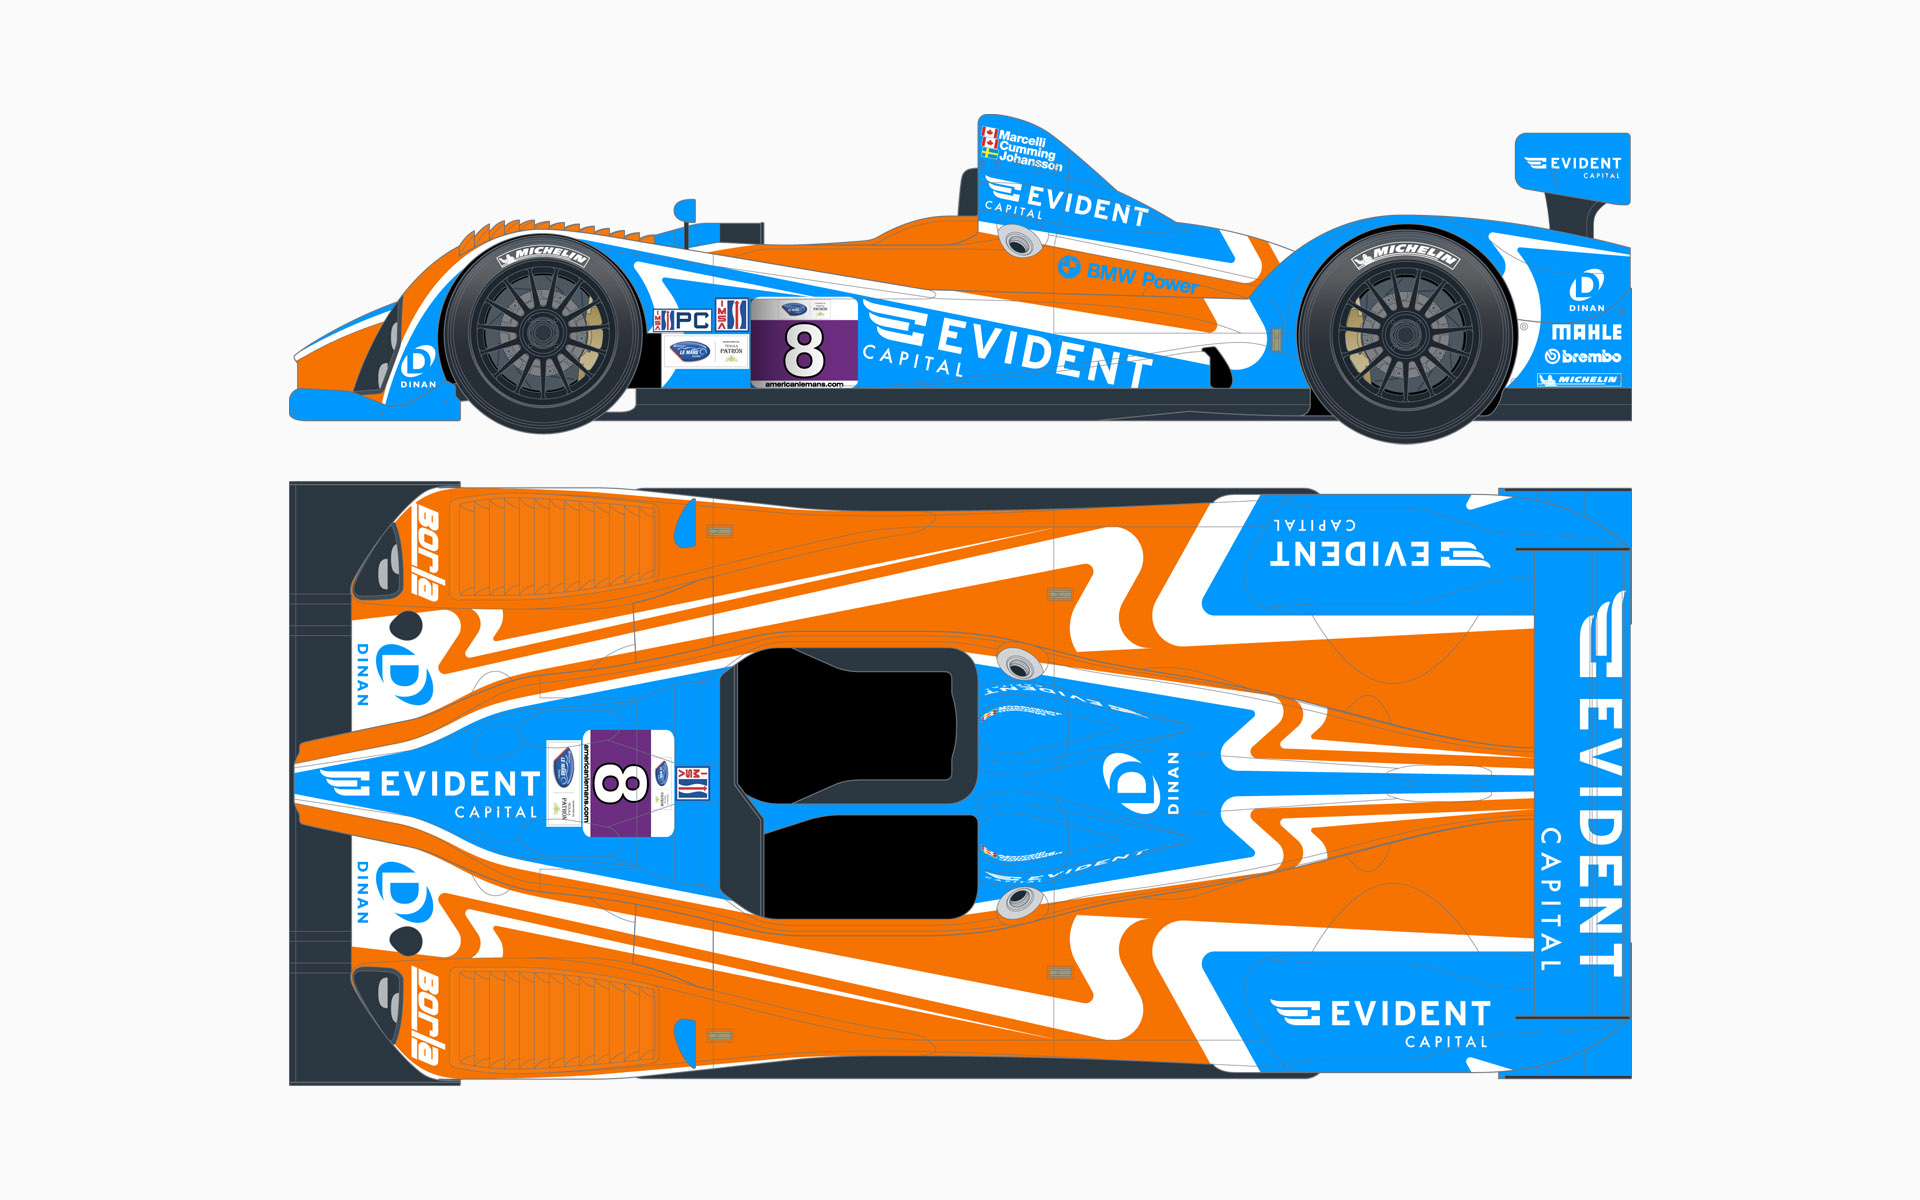 2013 Evident Capital Oreca LMPC Livery Elevations